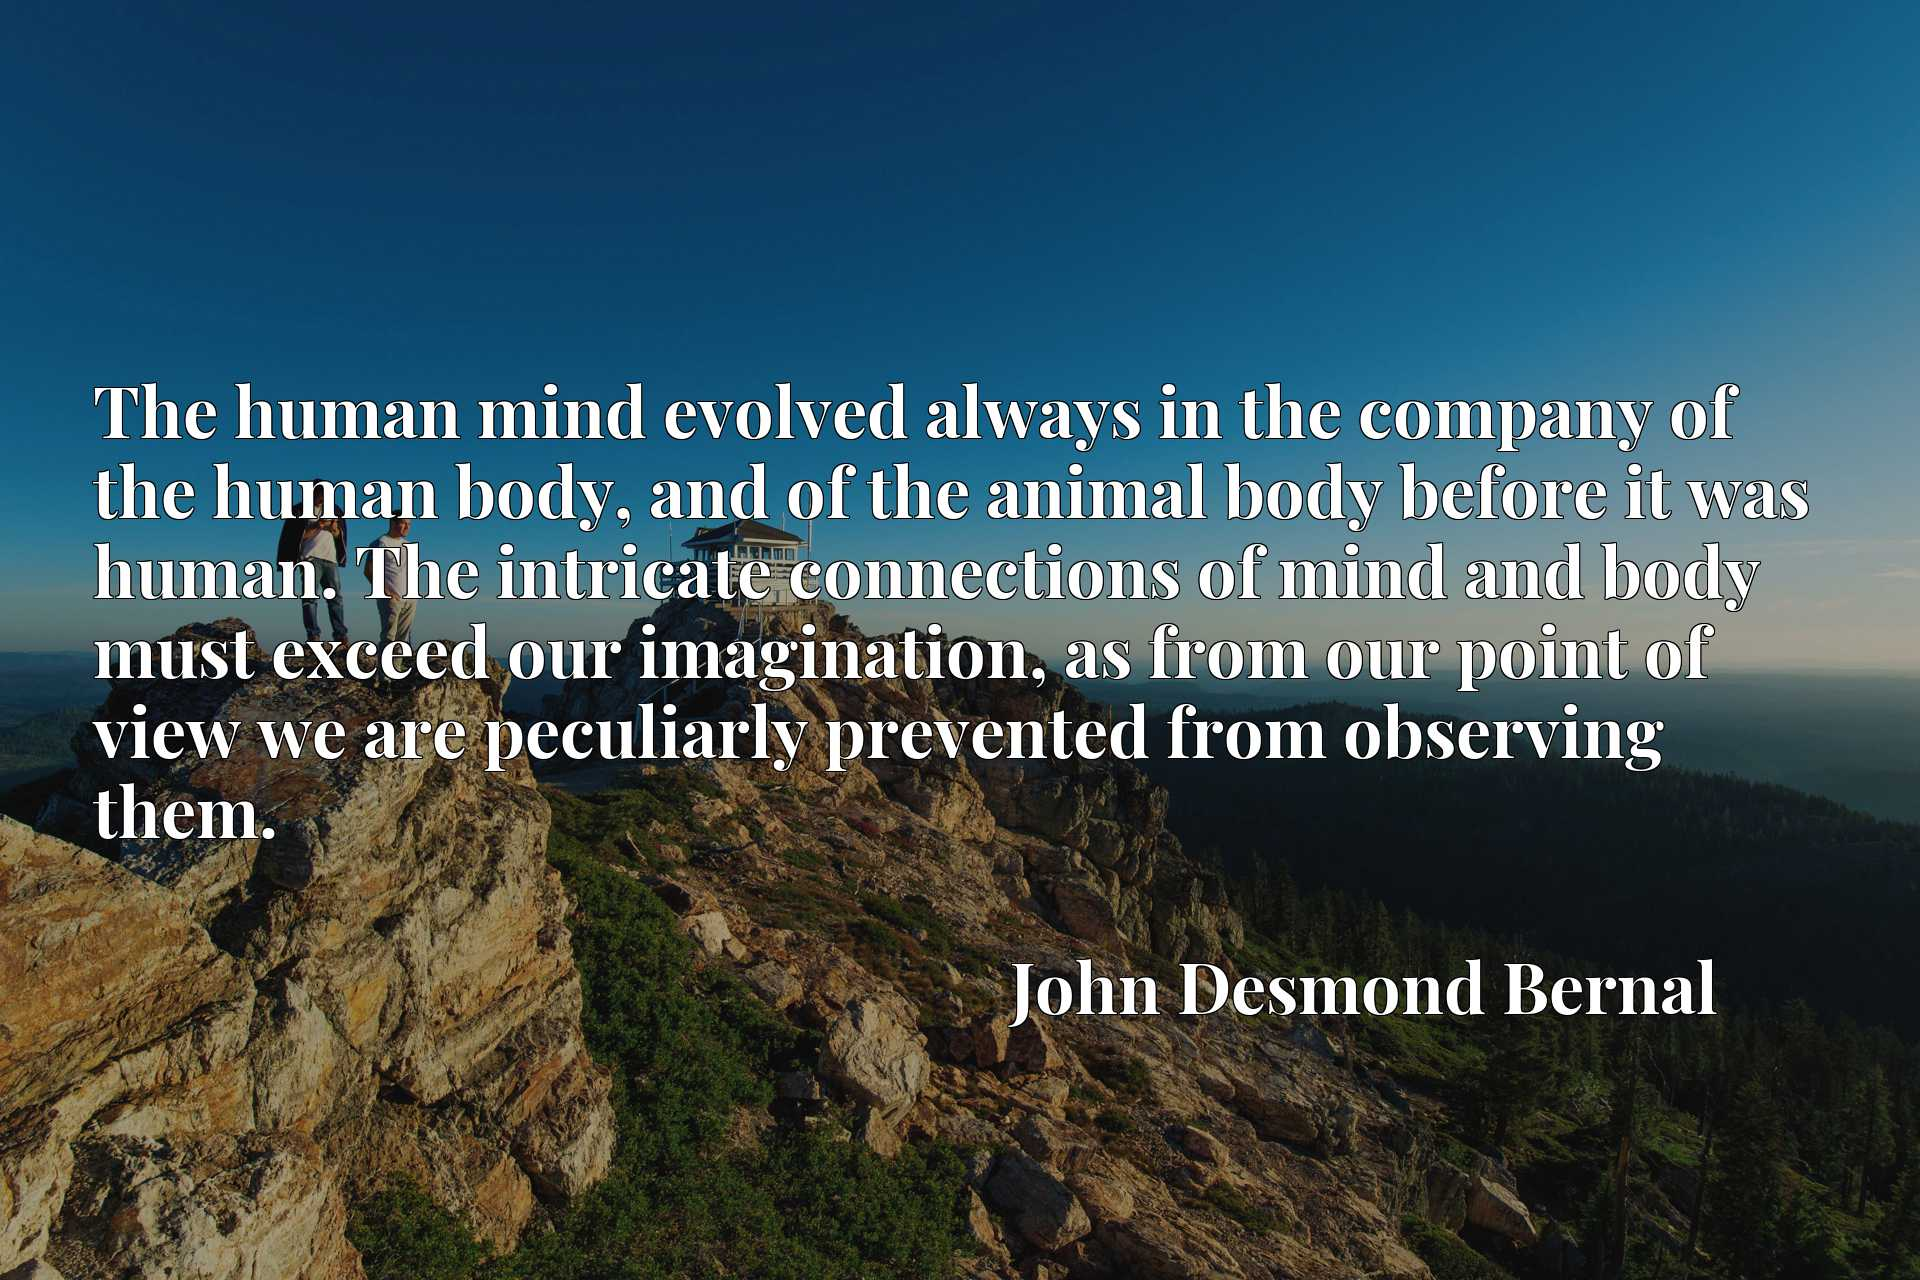 The human mind evolved always in the company of the human body, and of the animal body before it was human. The intricate connections of mind and body must exceed our imagination, as from our point of view we are peculiarly prevented from observing them.